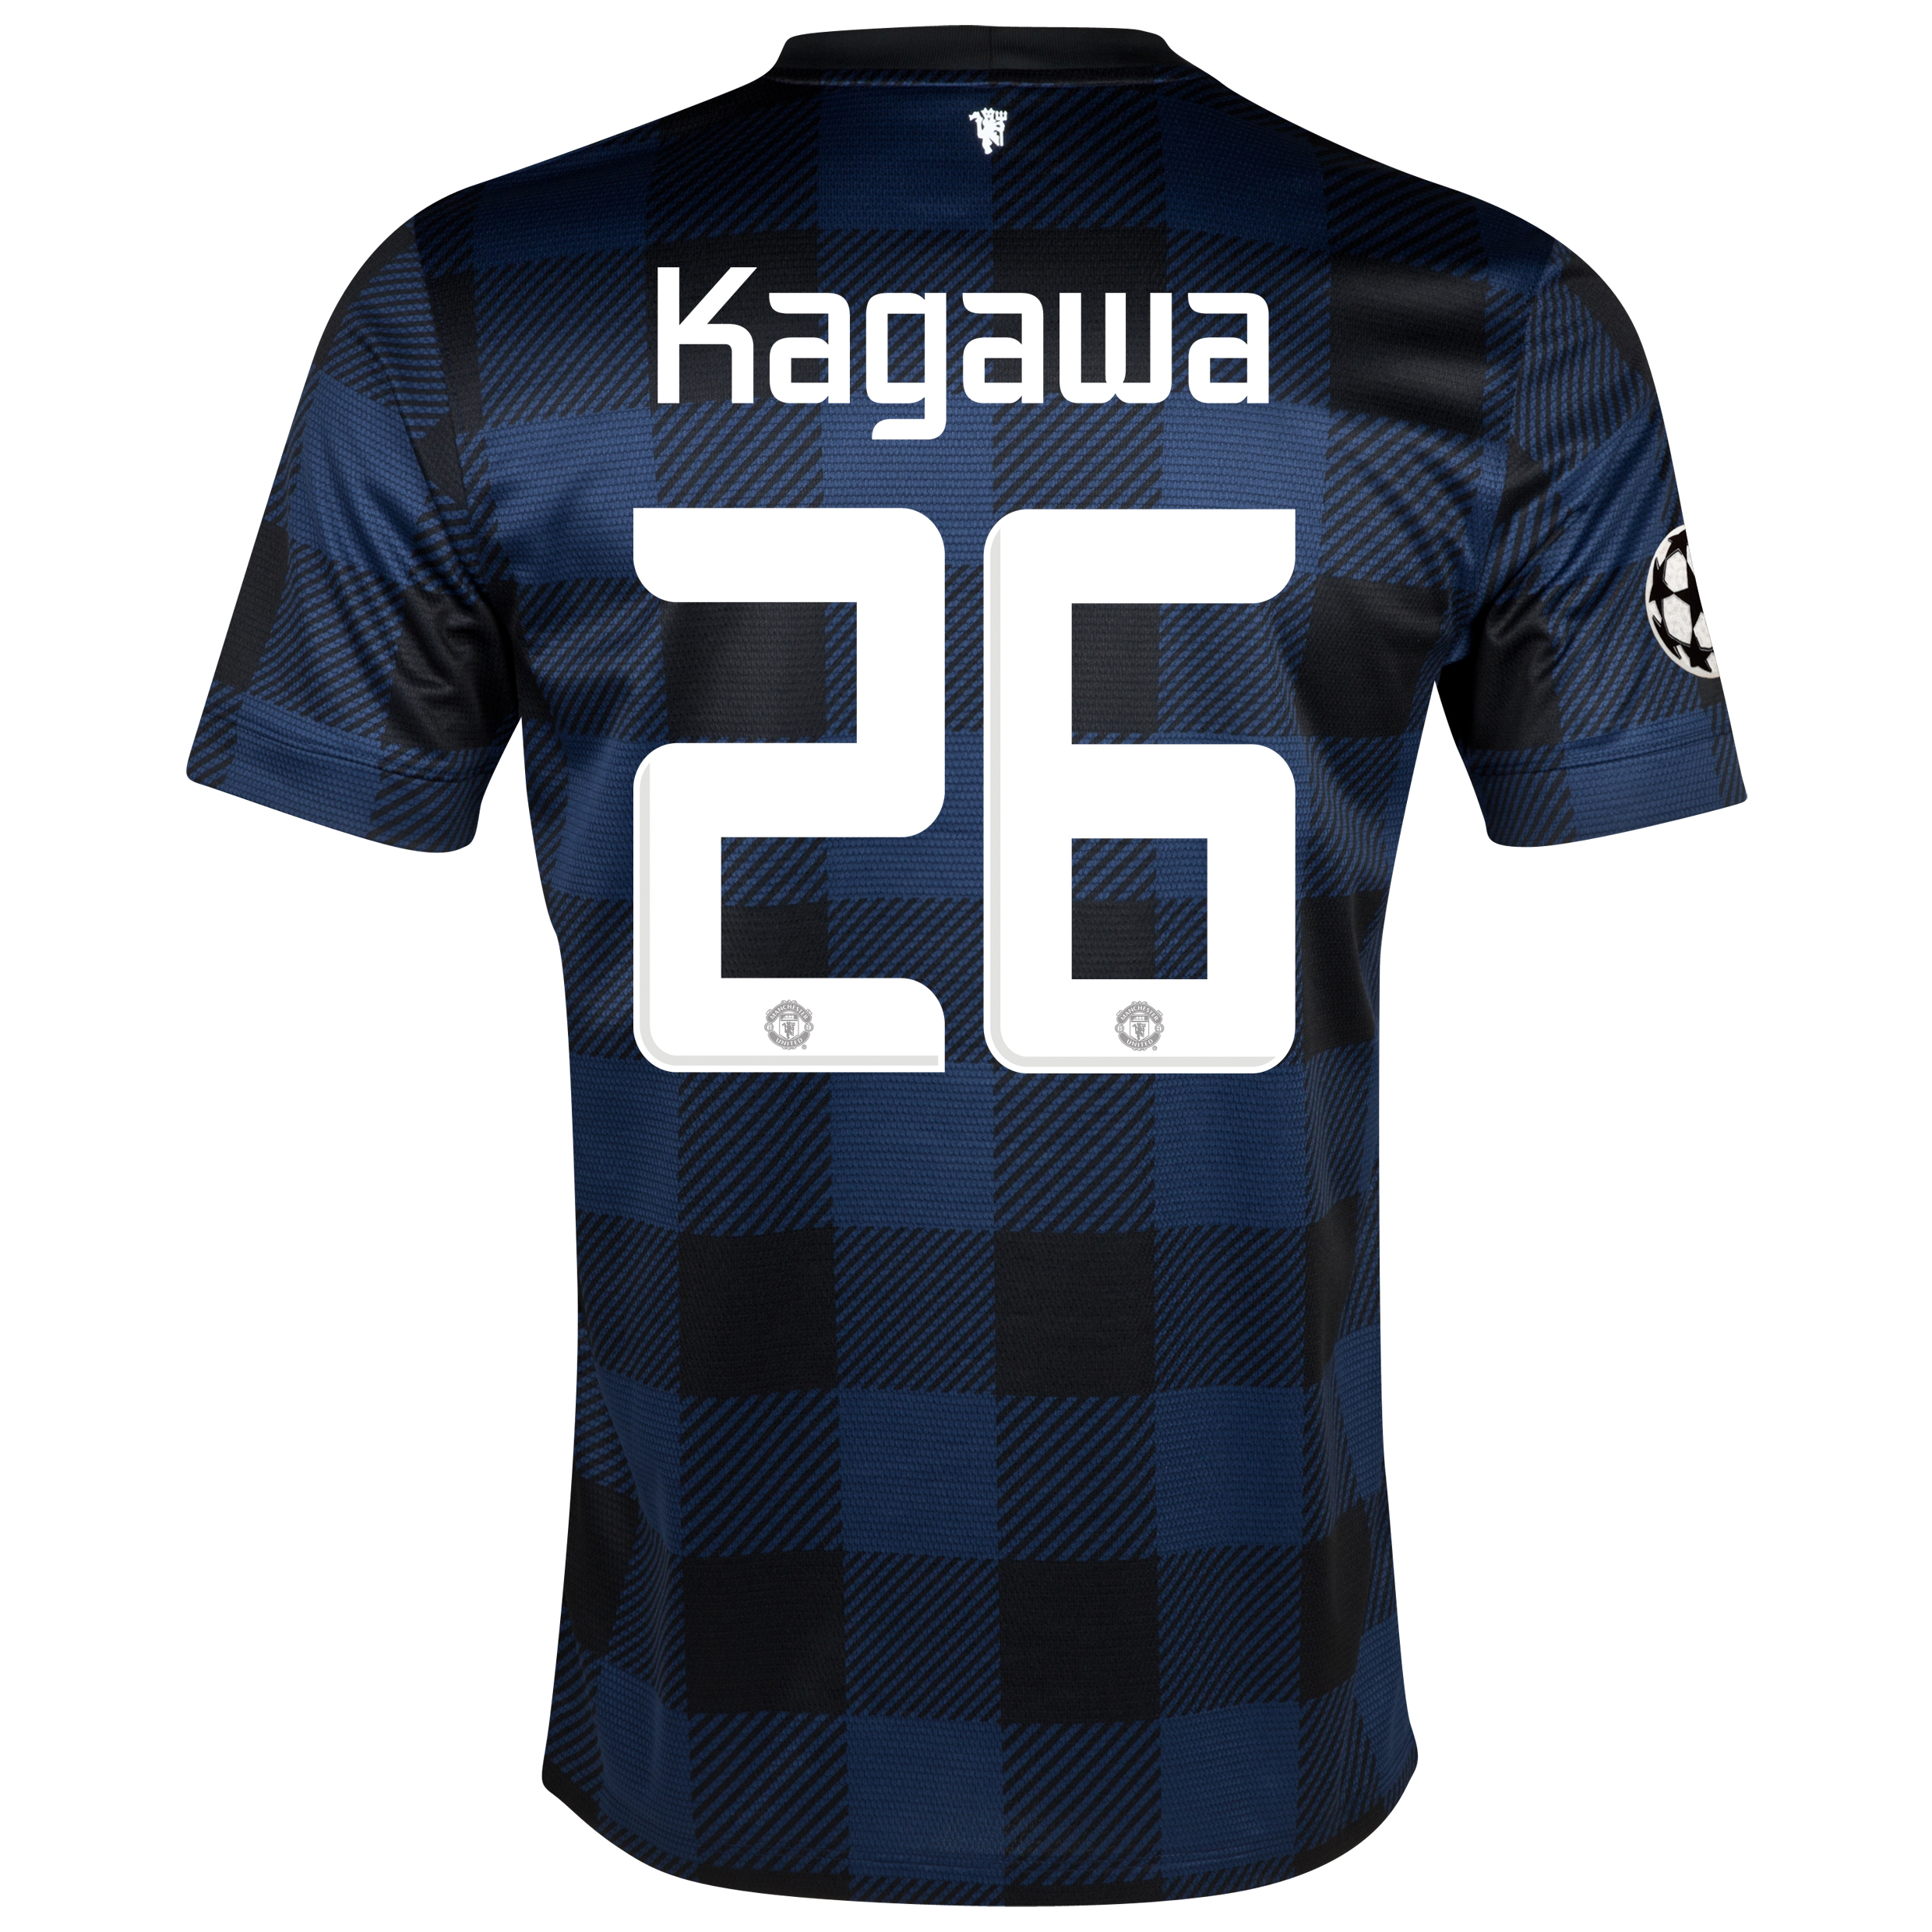 Manchester United UEFA Champions League Away Shirt 2013/14 - Kids with Kagawa 26 printing